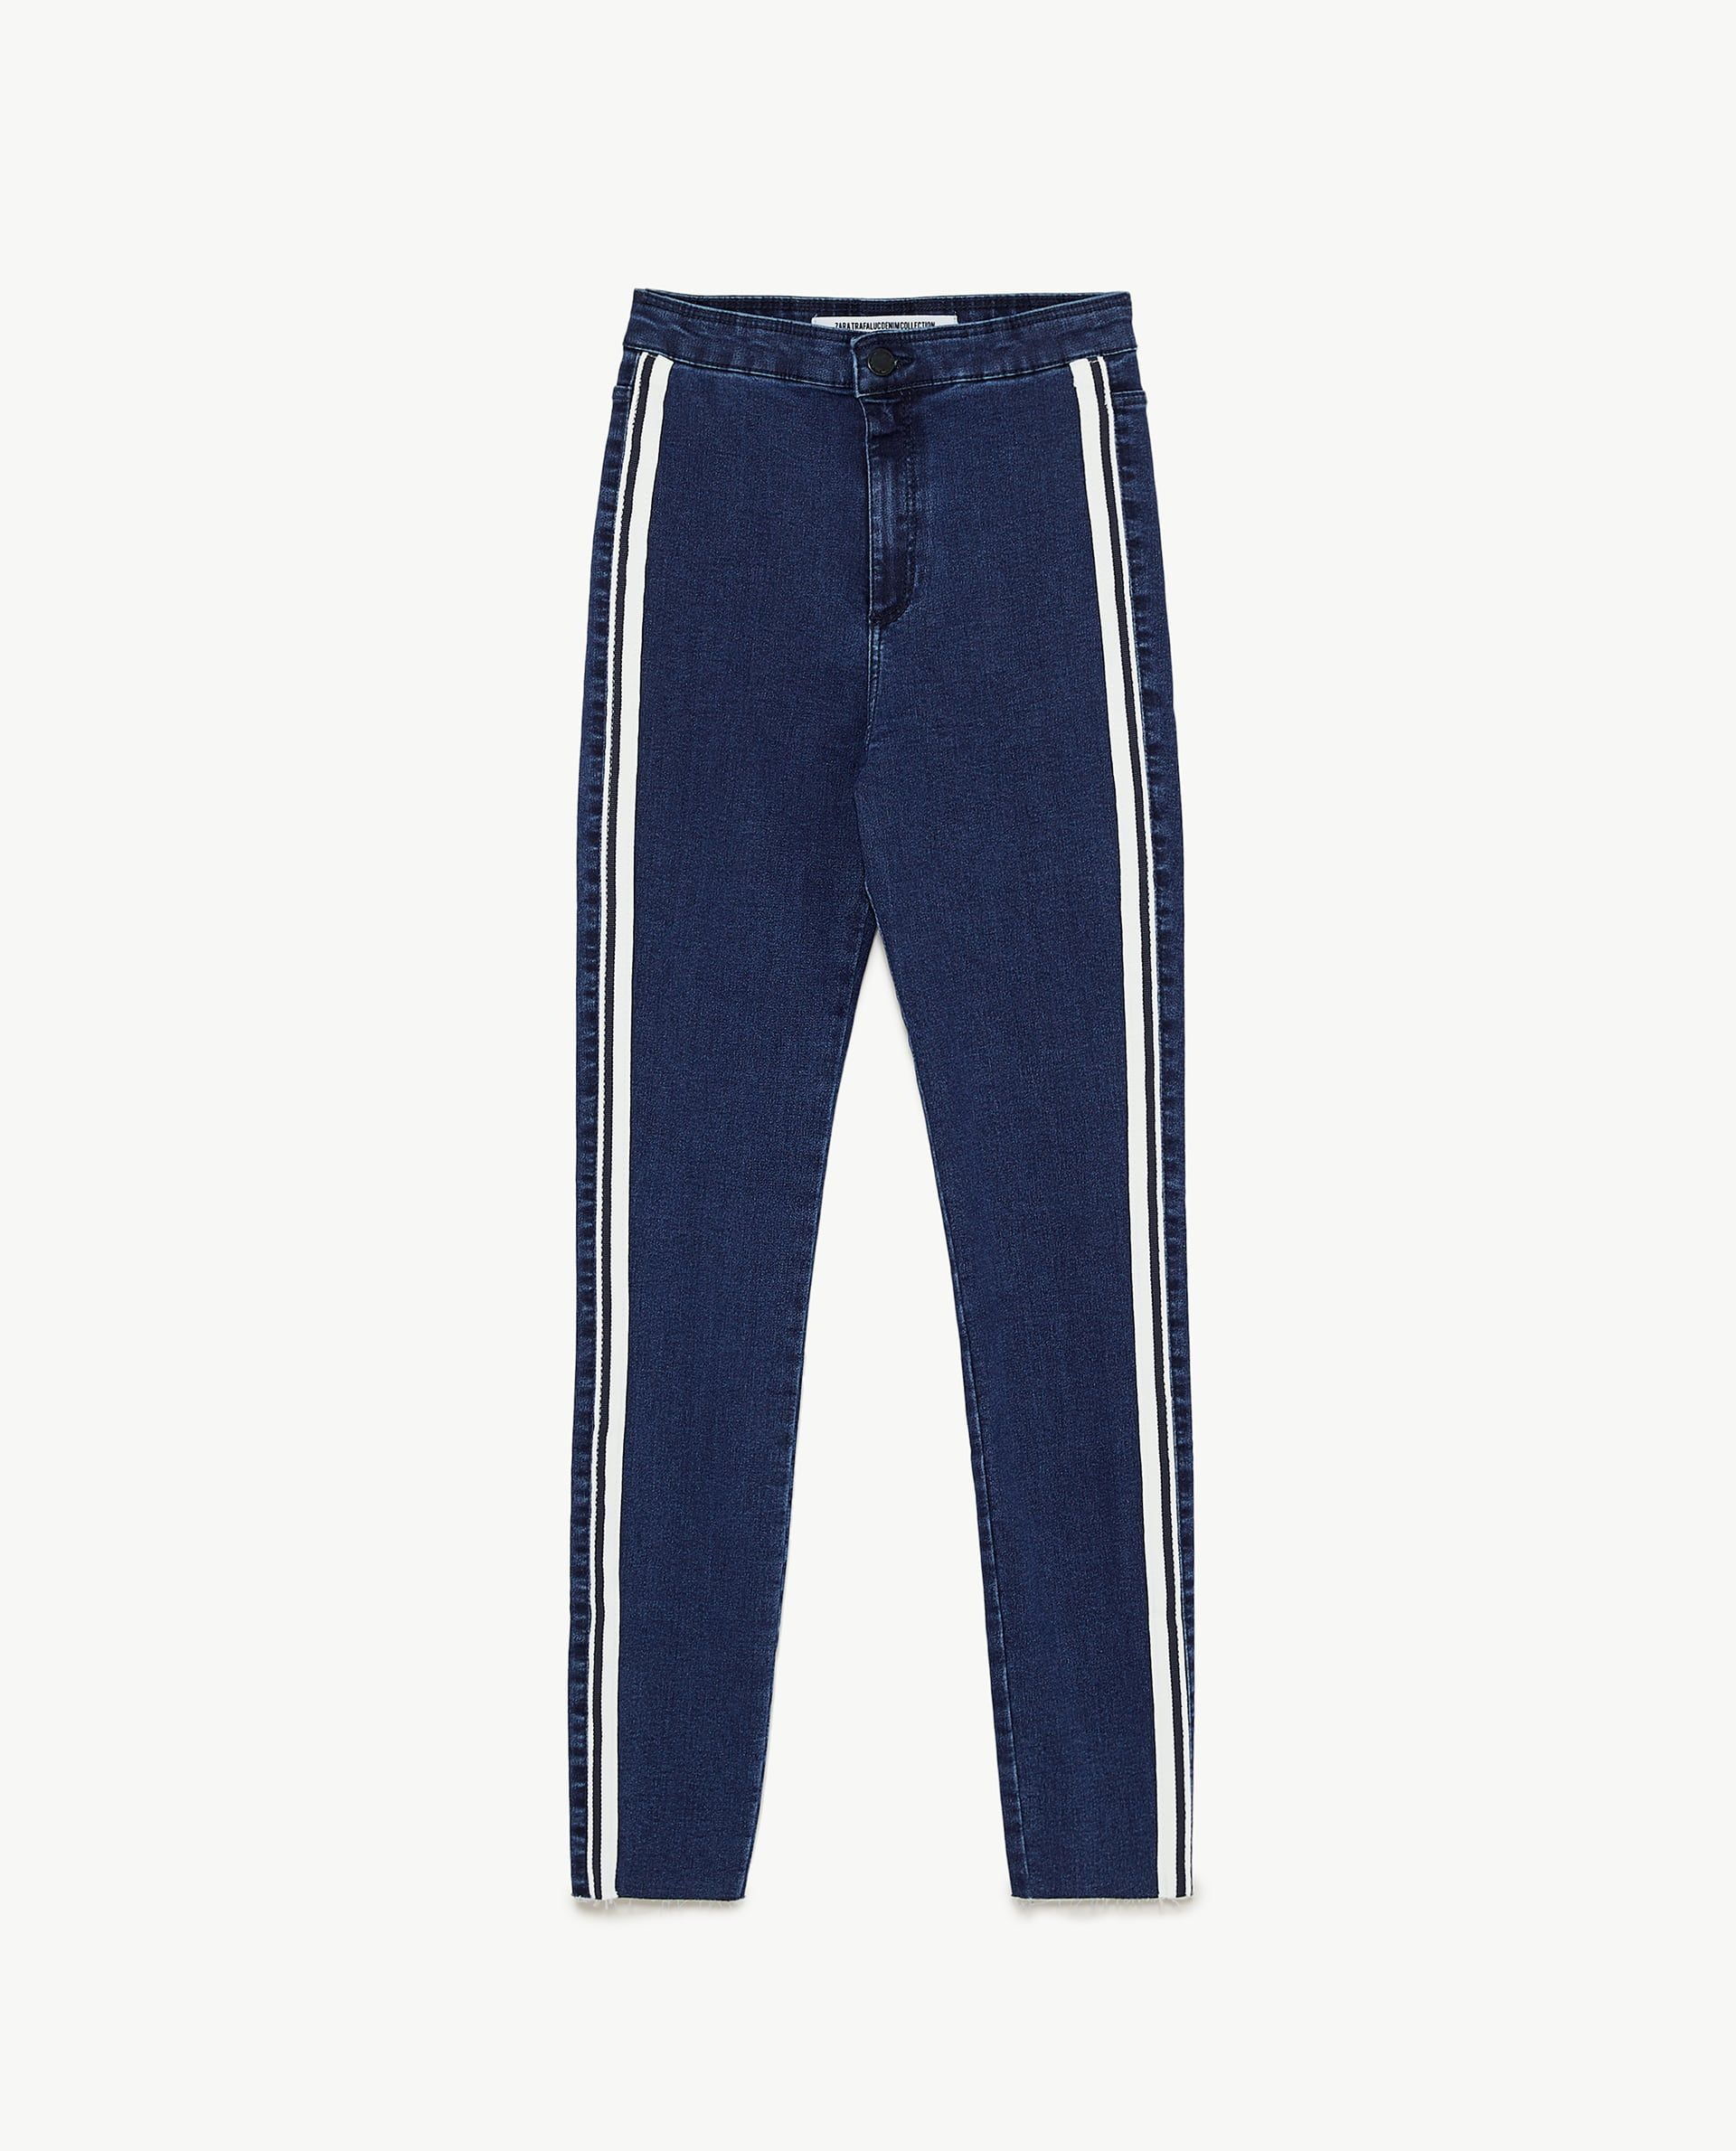 923ece93 Image 8 of HI-RISE 'SHAPER' JEGGINGS WITH SIDE STRIPE DETAIL from ...